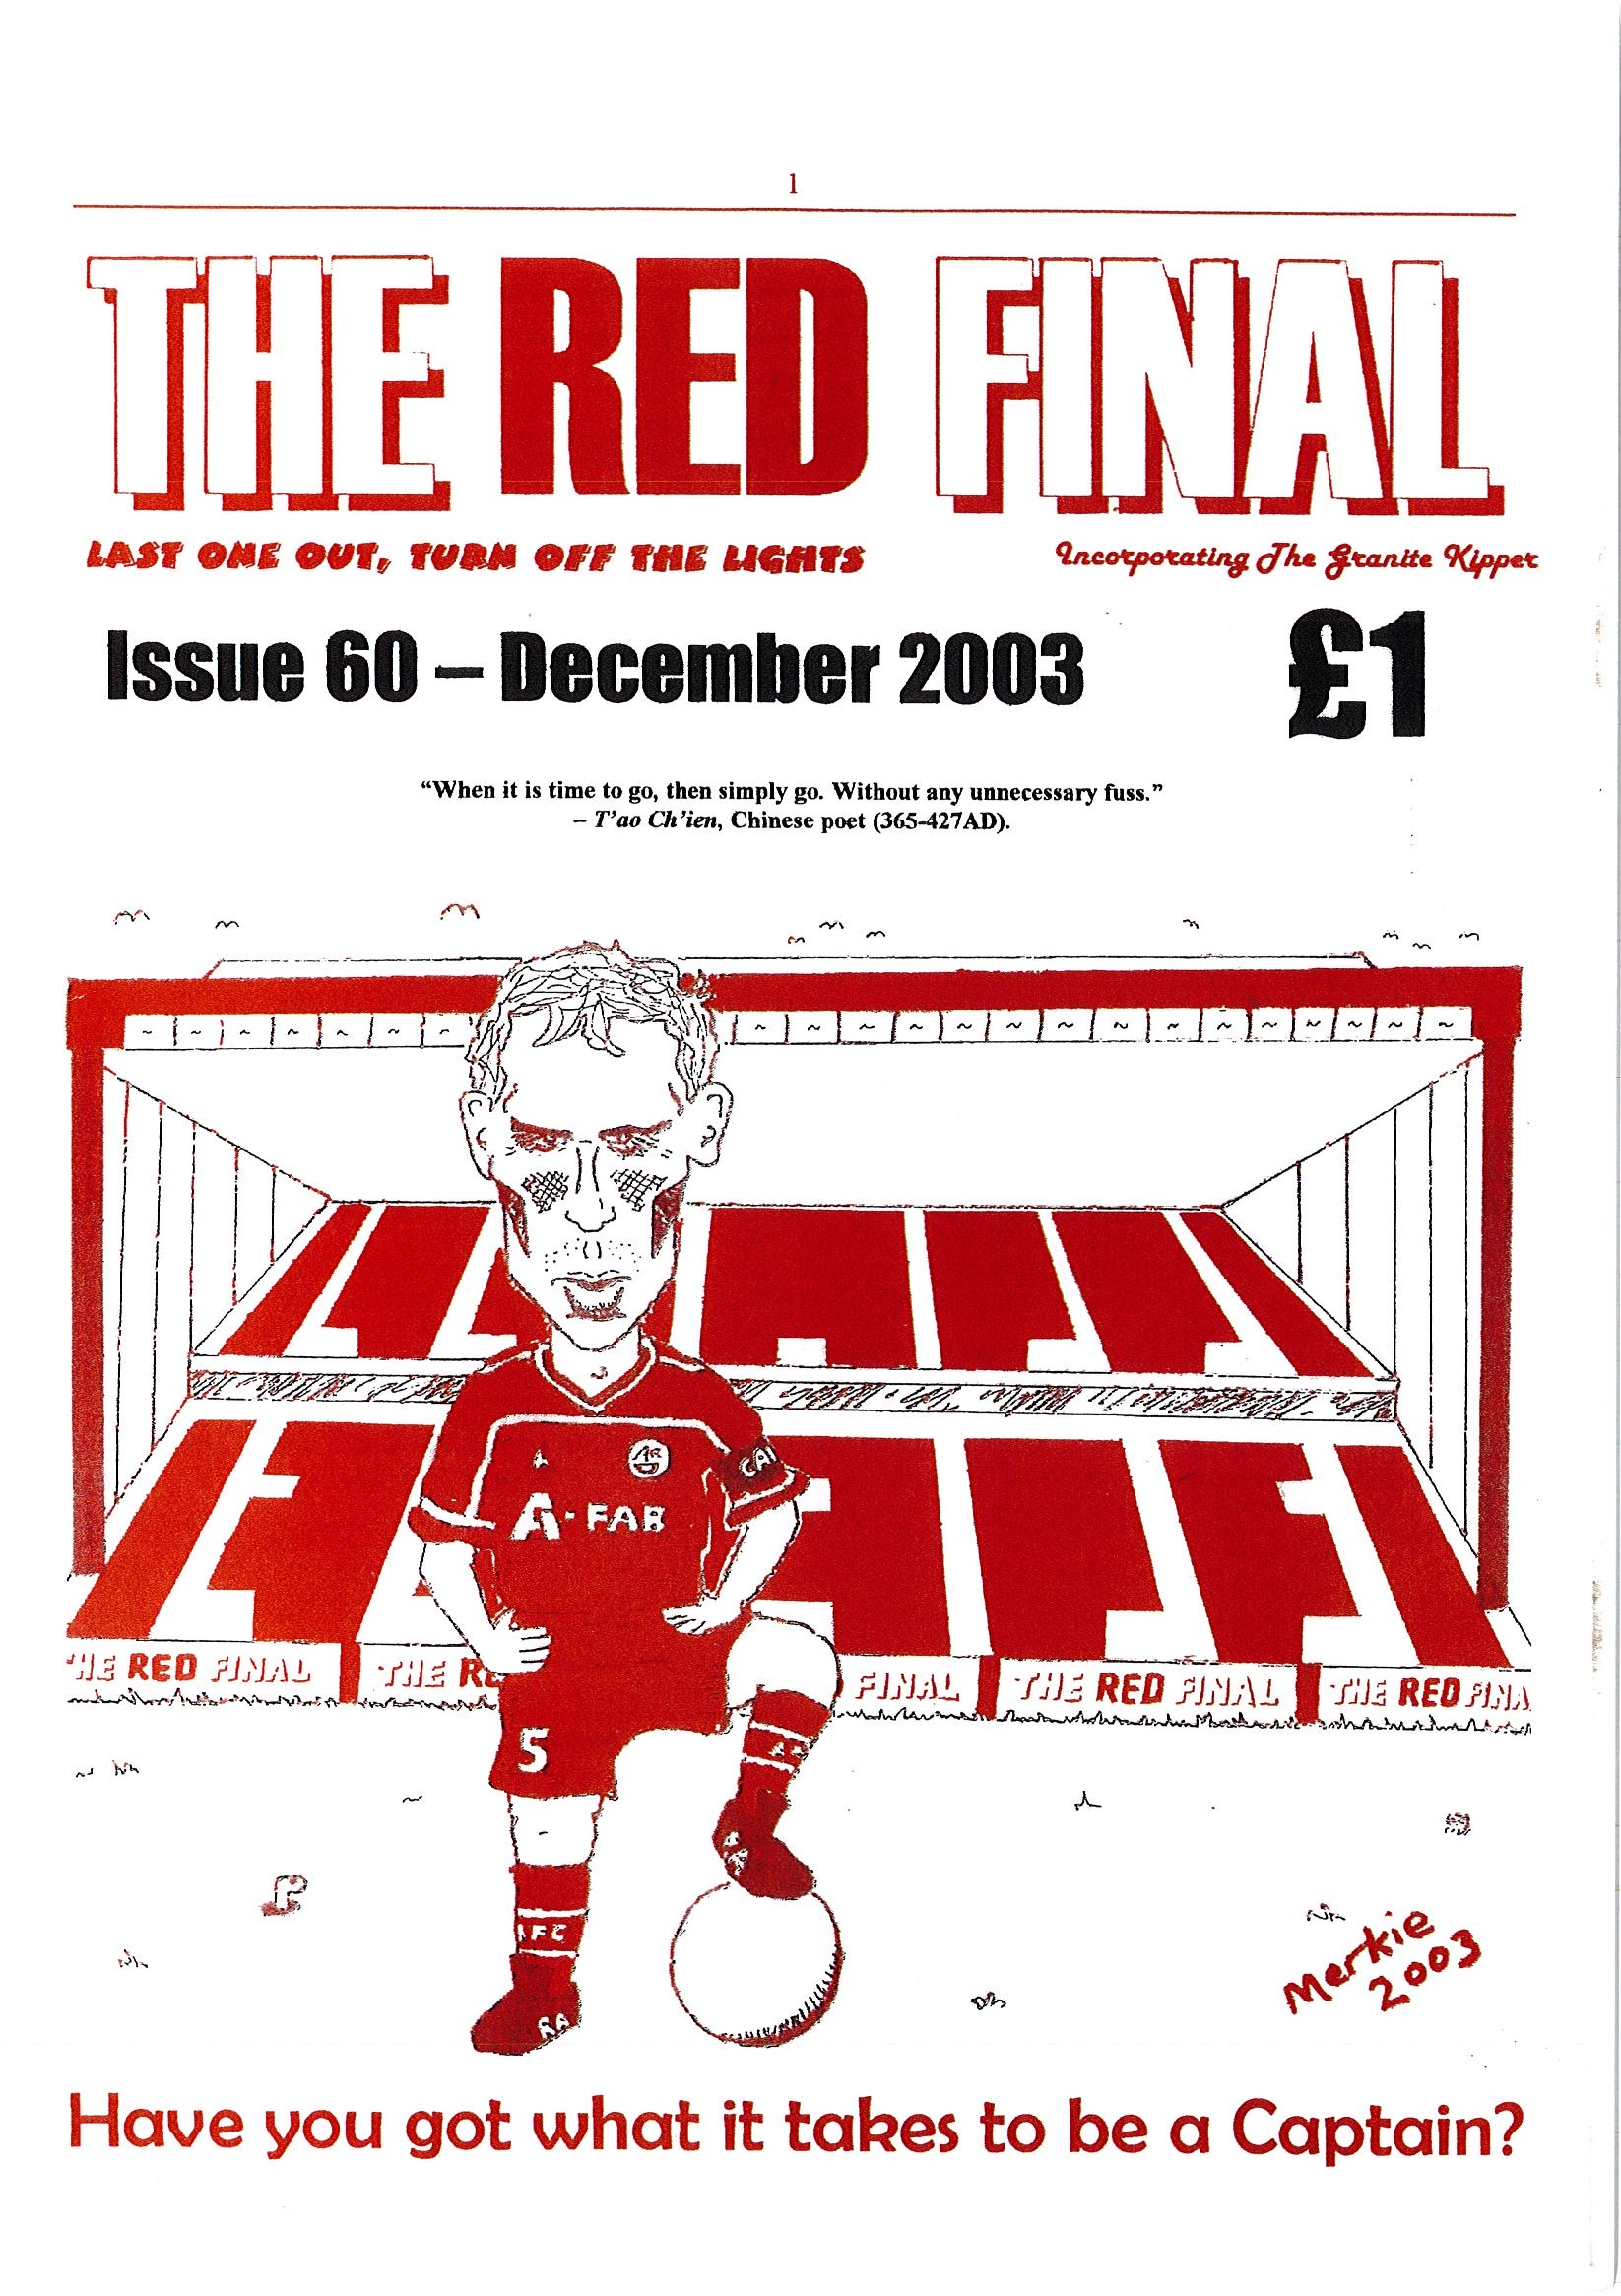 The Red Final, Issue 60